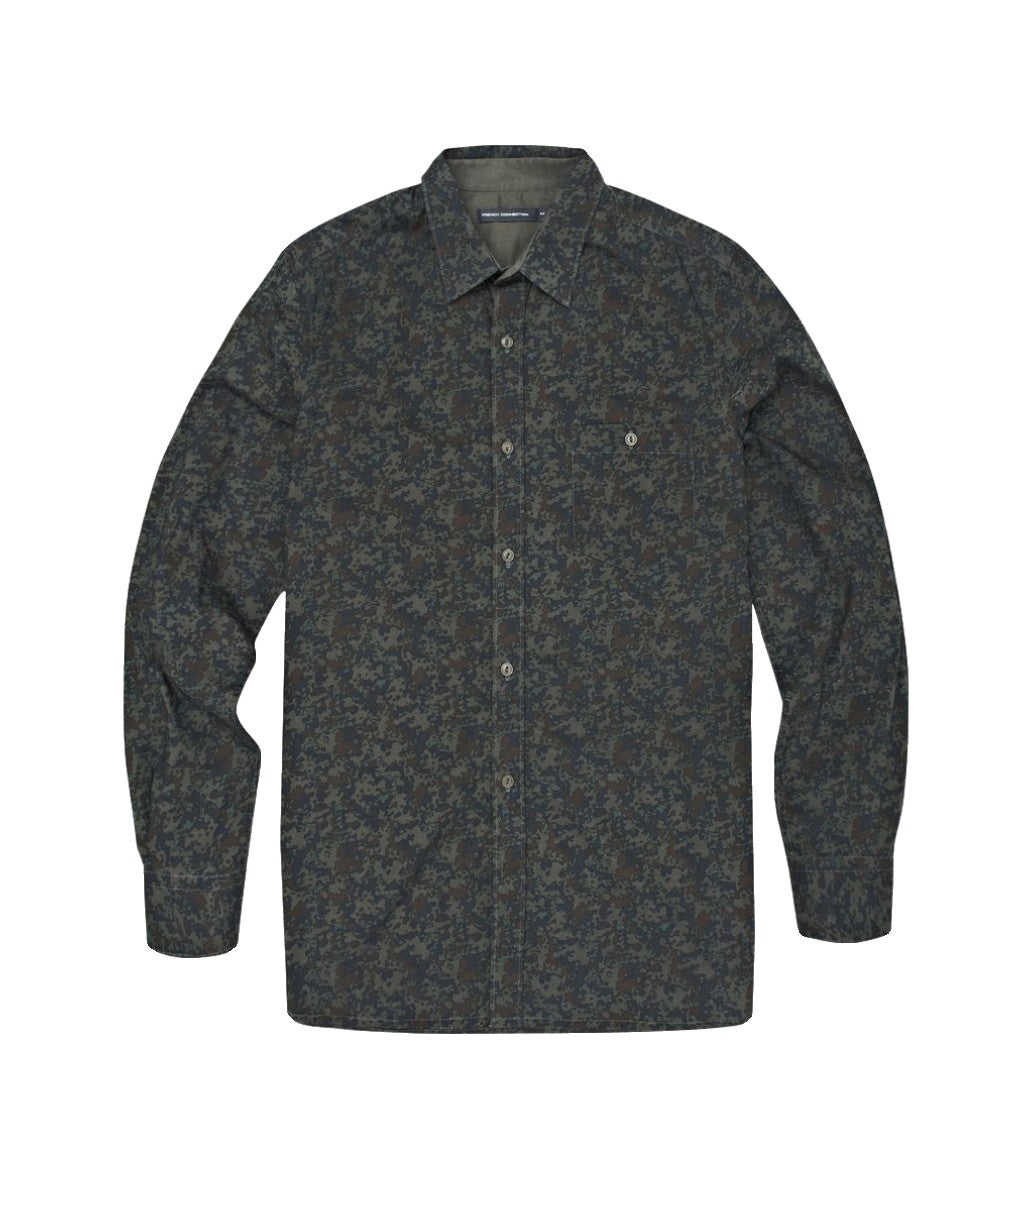 French Connection IRON SIGHT CAMO CONNERY LS SHIRT - BLACK INK